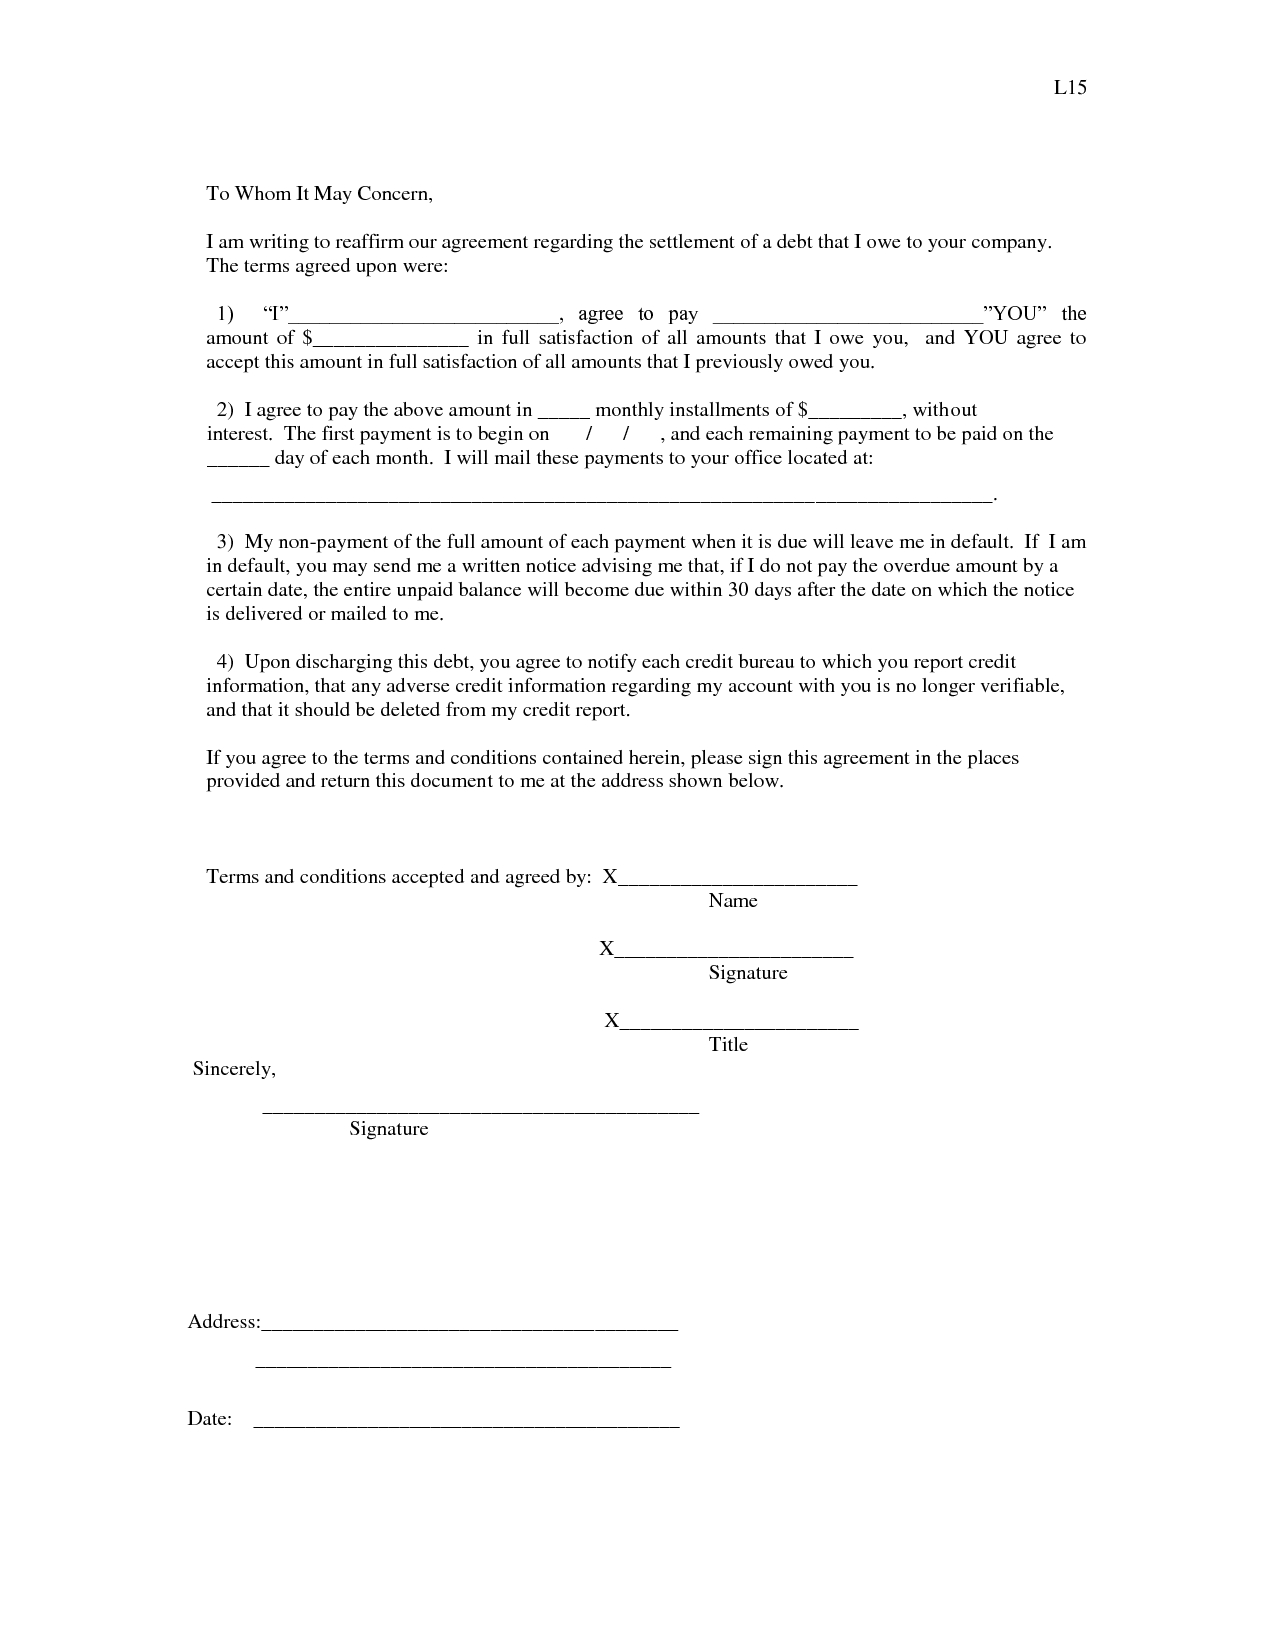 I Owe You Letter Template - How to Write A Letter when someone Owes You Money Letter